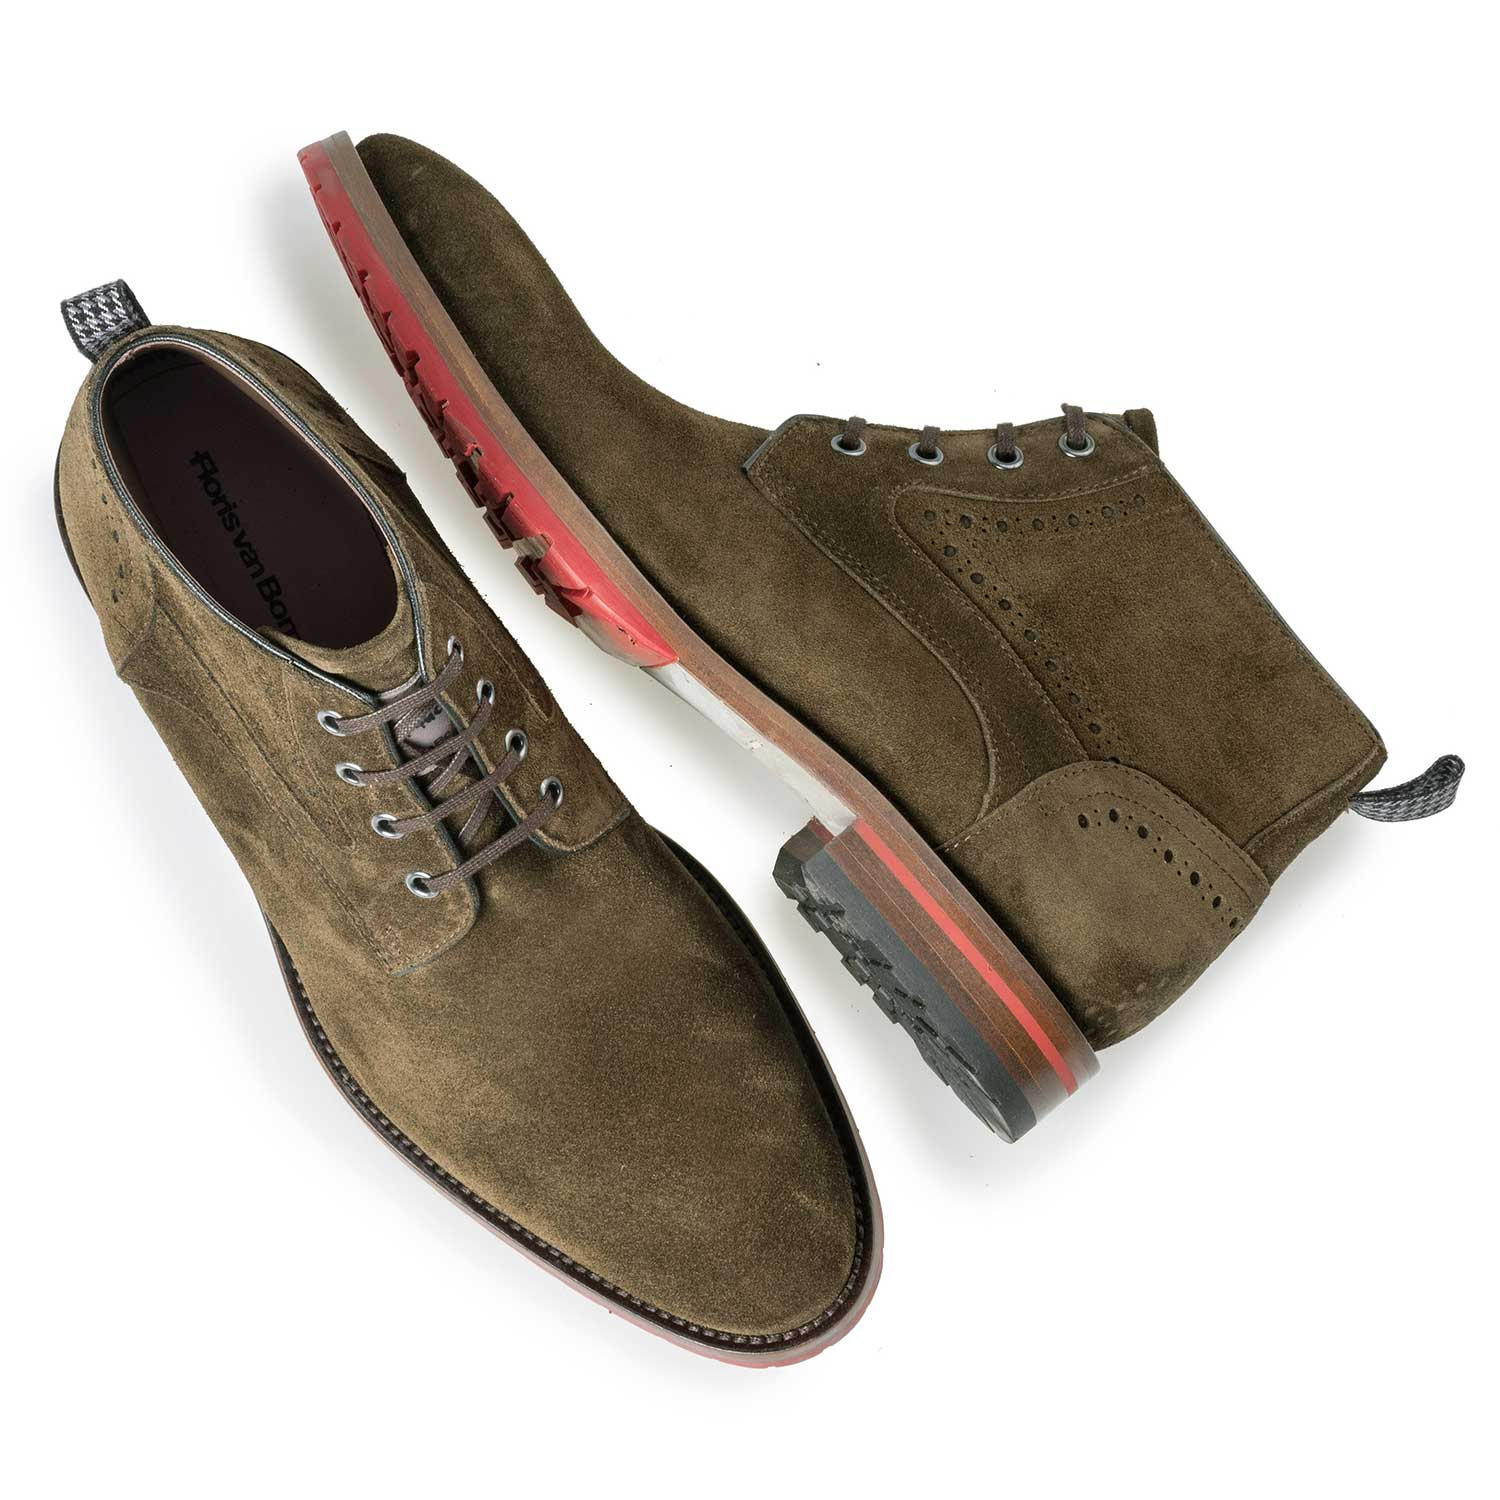 10317/05 - Brown/Olive green suede leather lace shoe